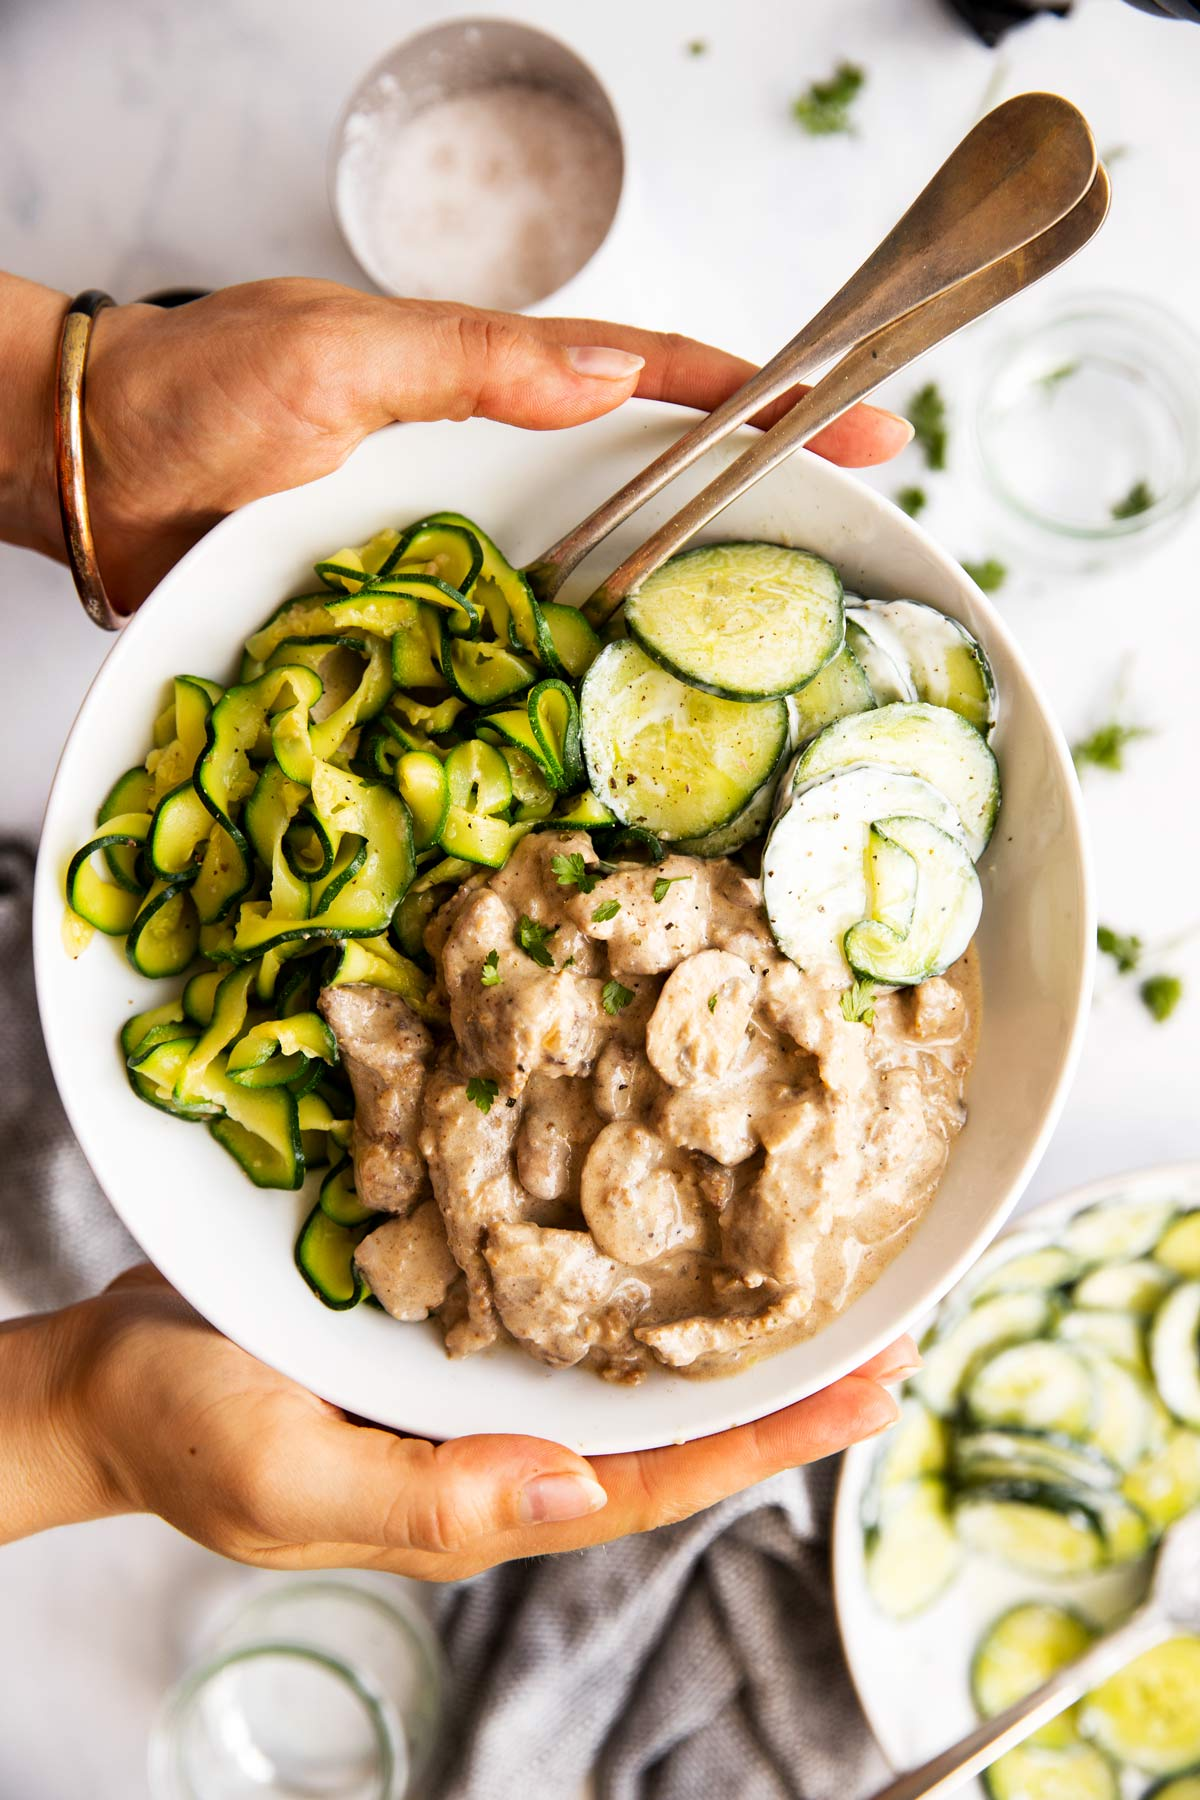 female hands holding a plate filled with stroganoff and low carb side dishes